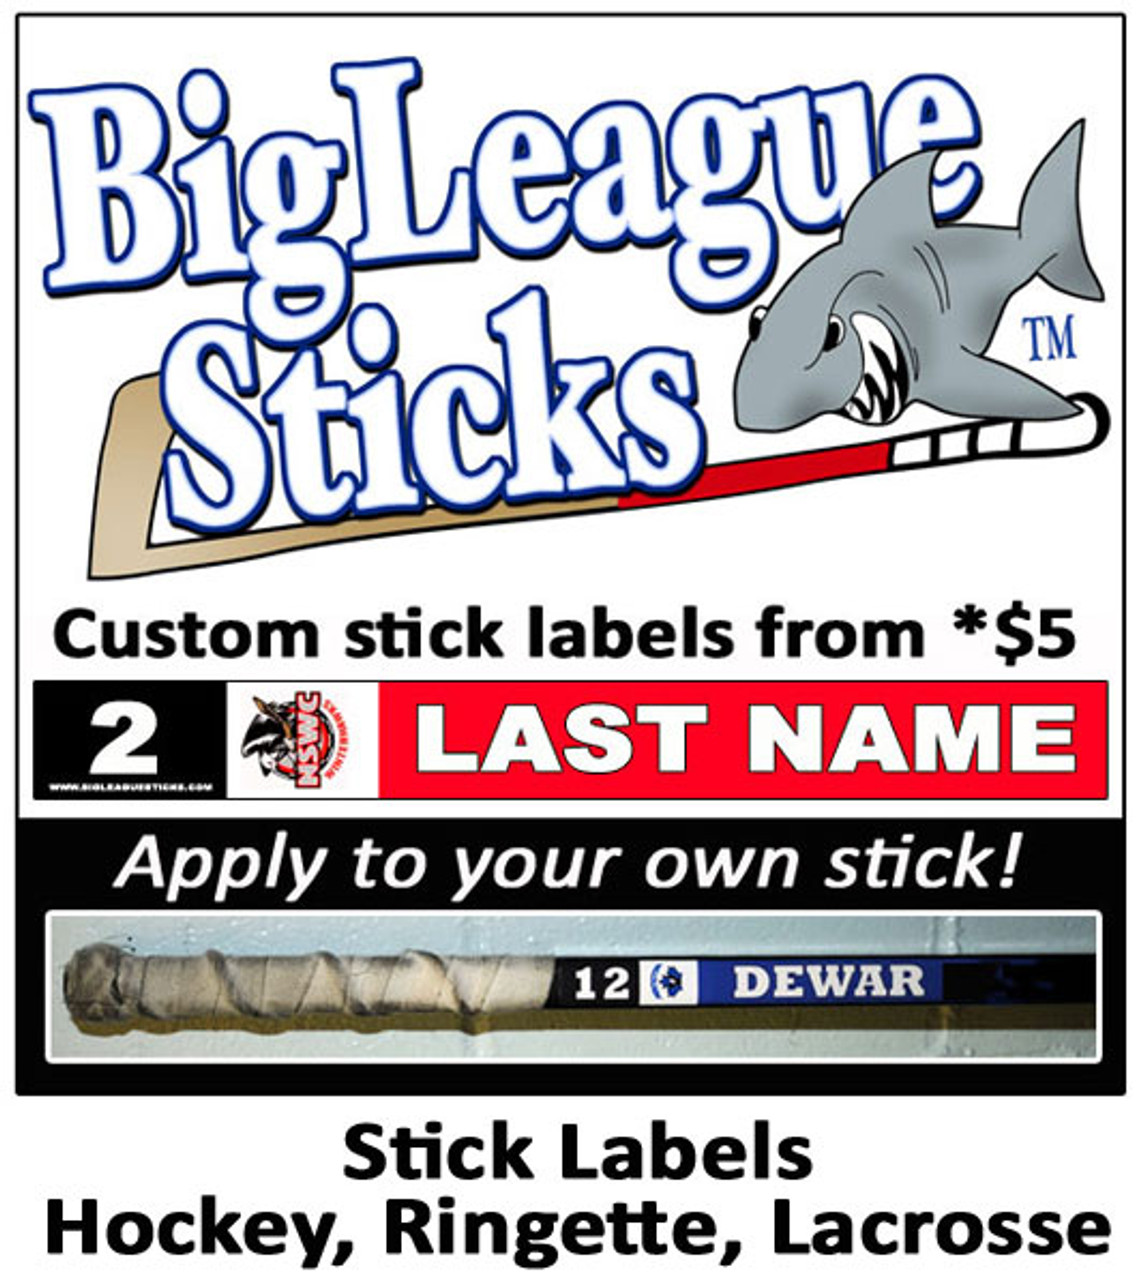 Big League Stick Labels. Customize your own water resistant label with you logo, name, number and team colors and apply to your own stick from as little as $ 5. Ideal for hockey, ringette, lacrosse, field hockey & curling.